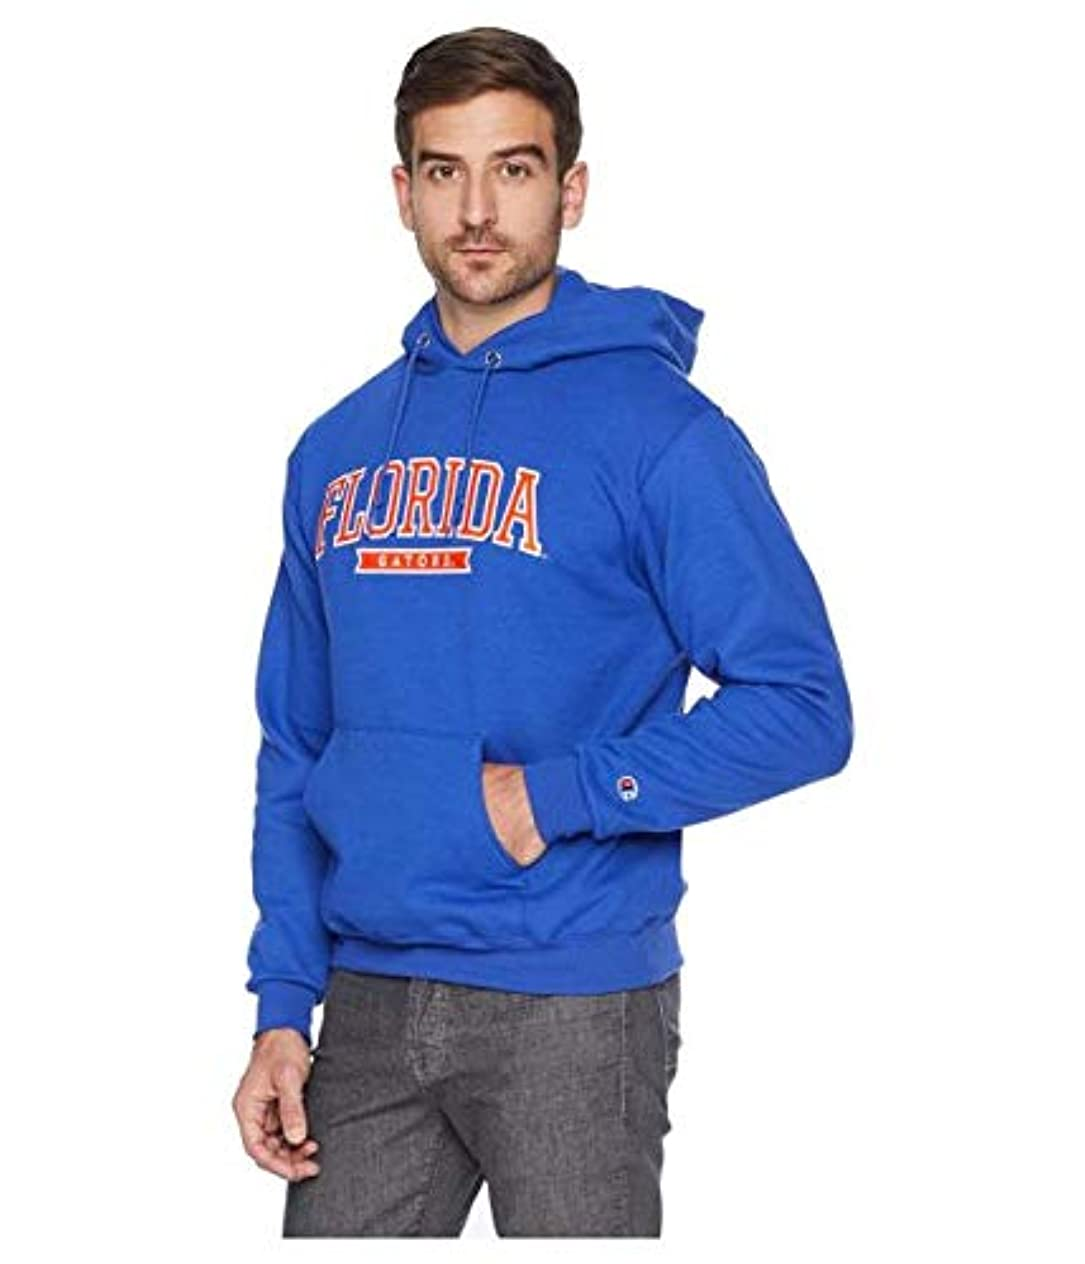 中断大破シェルChampion College Florida Gators Eco? Powerblend? Hoodie 服 LG 【並行輸入品】